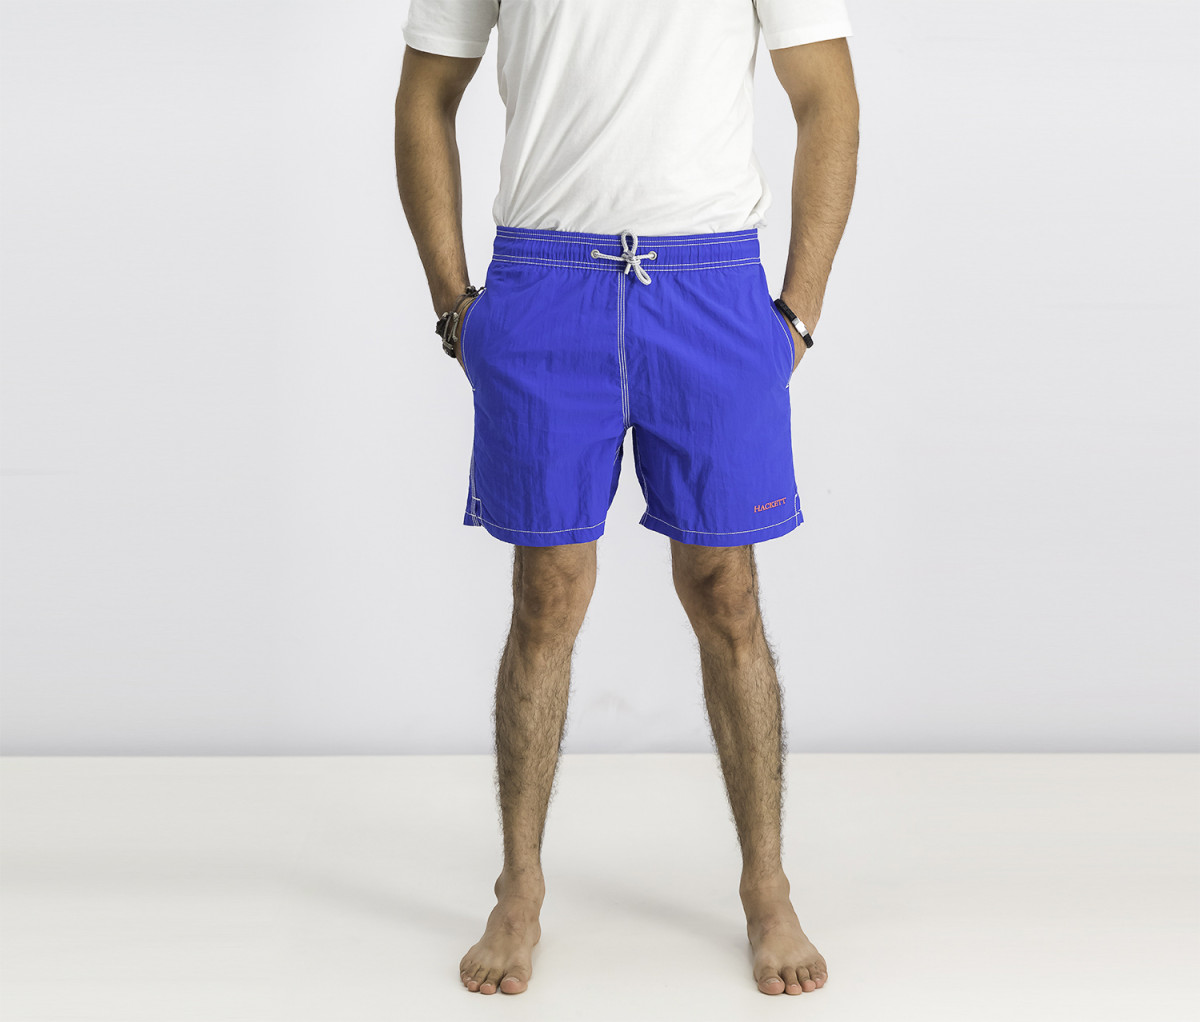 Hackett Mens Board Short  Bright Blue